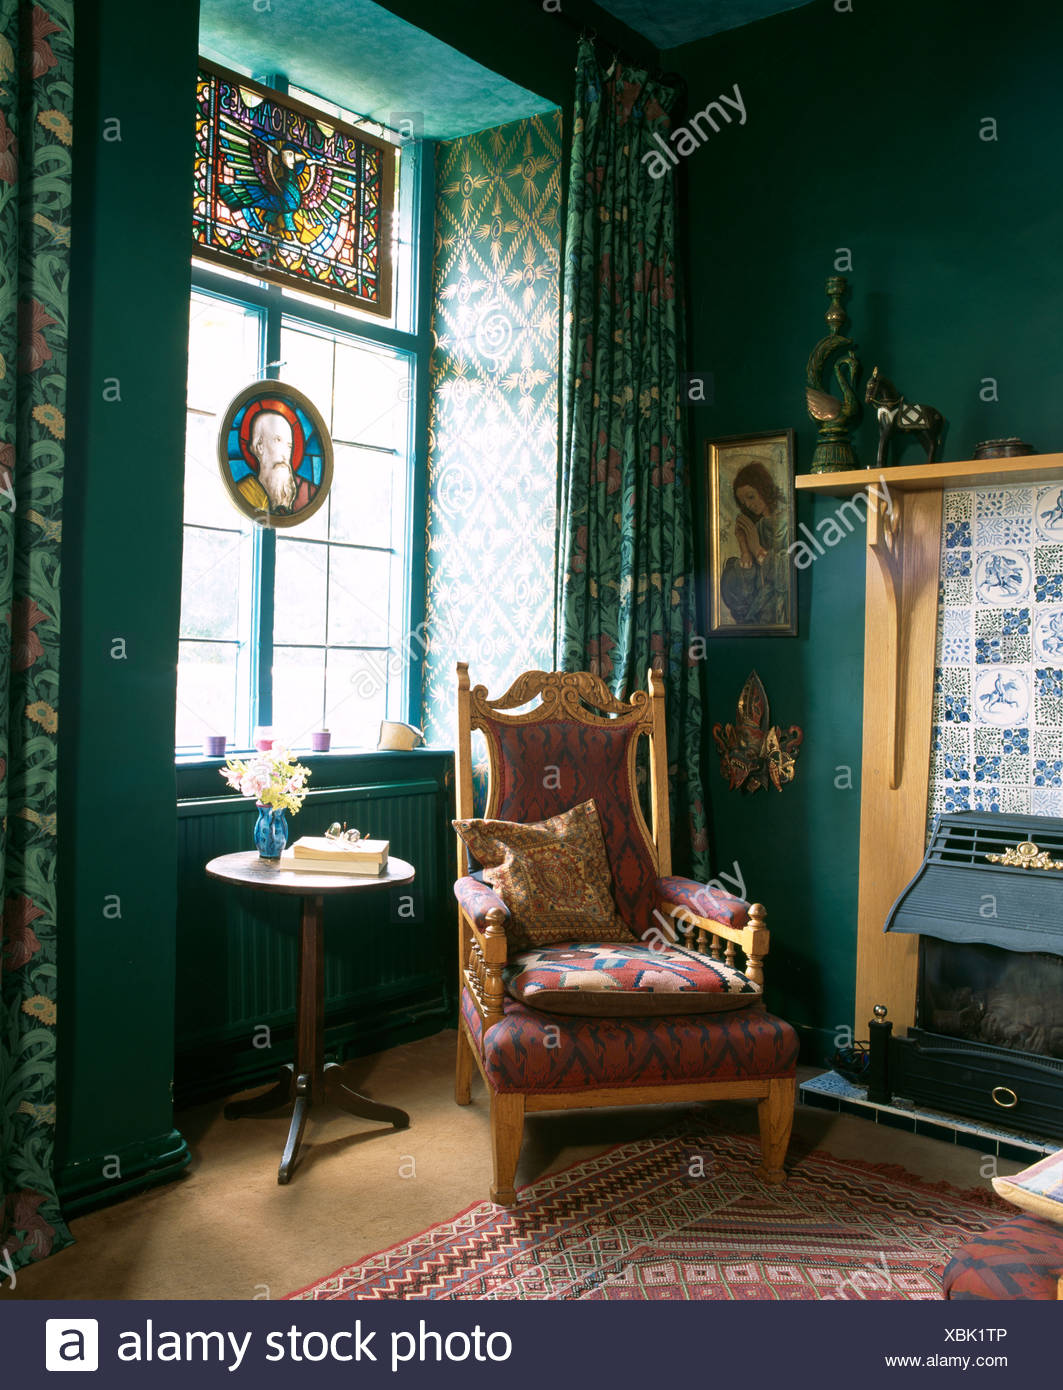 Edwardian Armchair Beside Fireplace With Electric Fire In Dark Green Living Room With Stained Glass Panel In Window Stock Photo Alamy